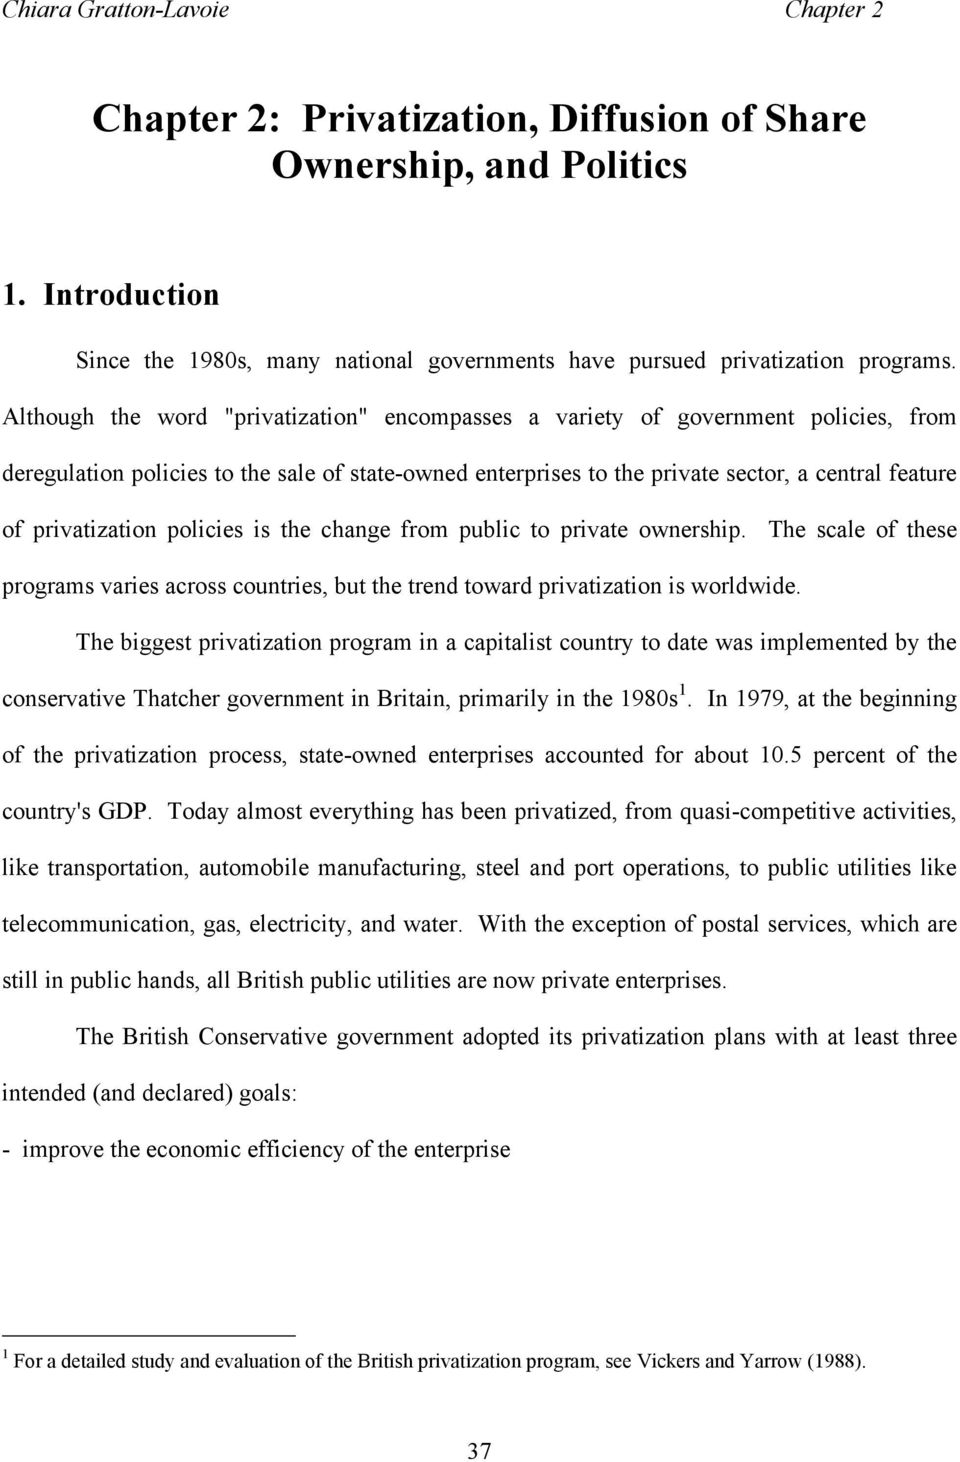 public to privat ownrship. Th scal o ths programs varis across countris but th trn towar privatization is worlwi.